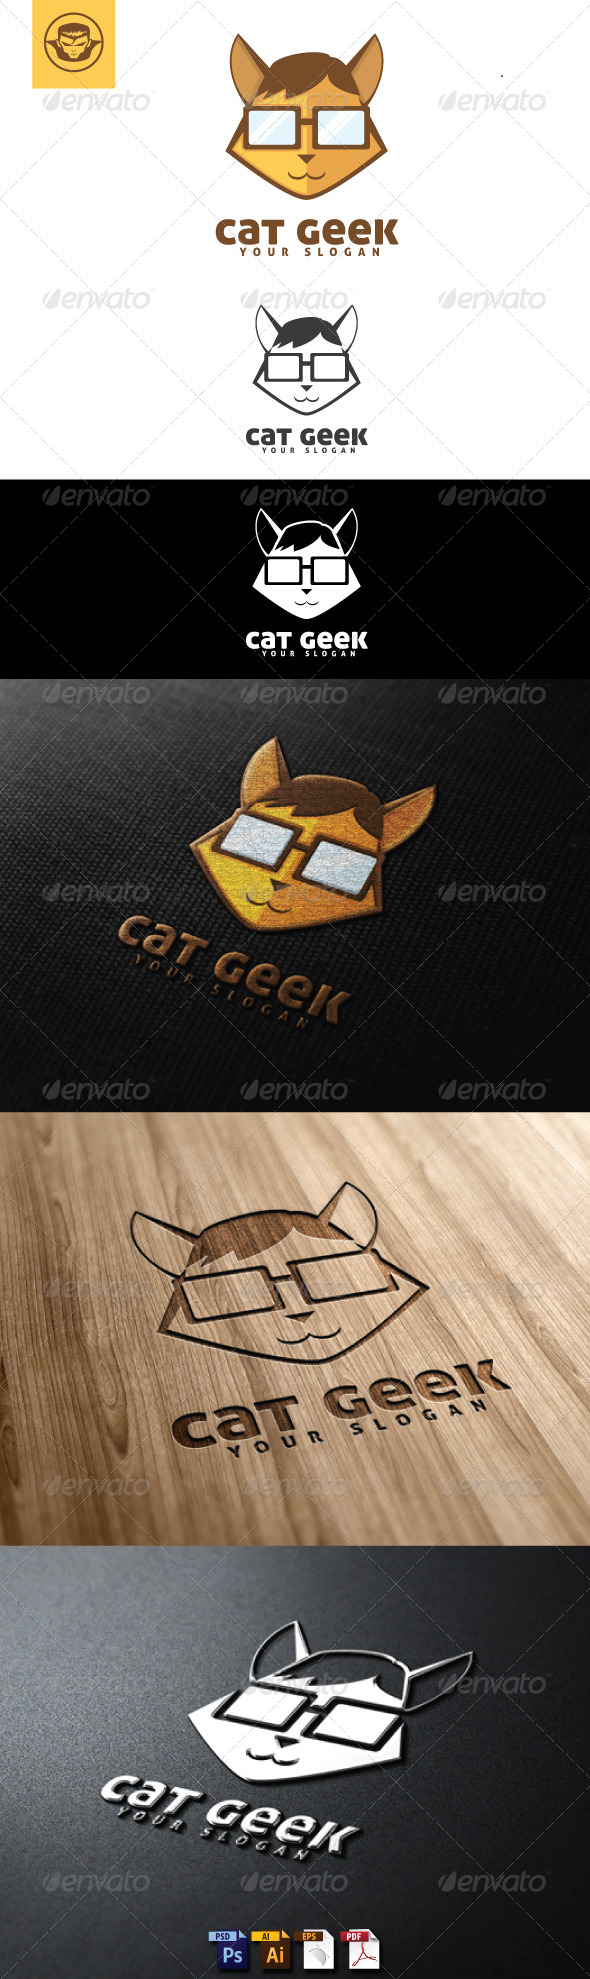 GraphicRiver Cat Geek Logo Template 4844406